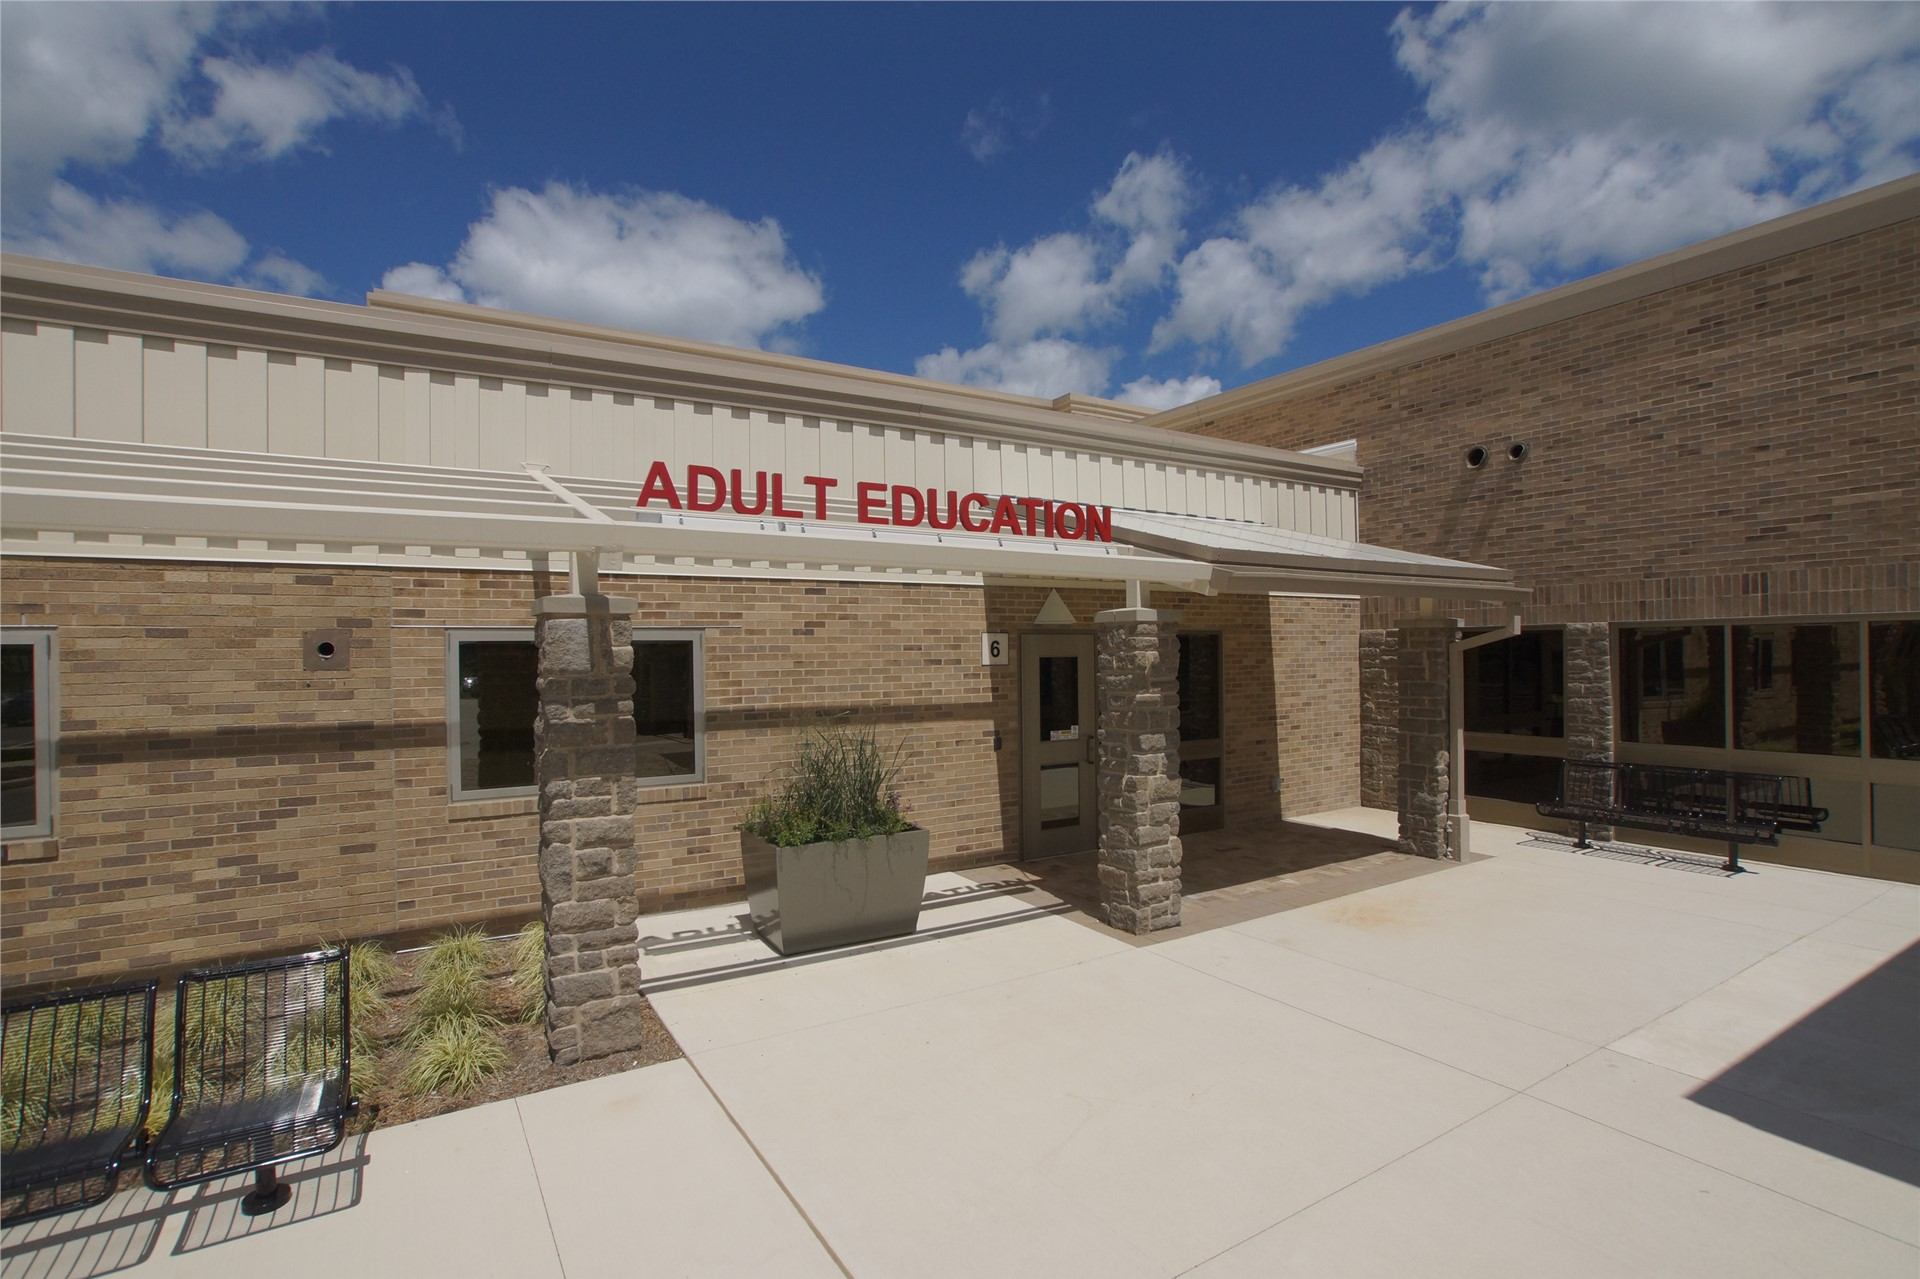 Adult education entrance